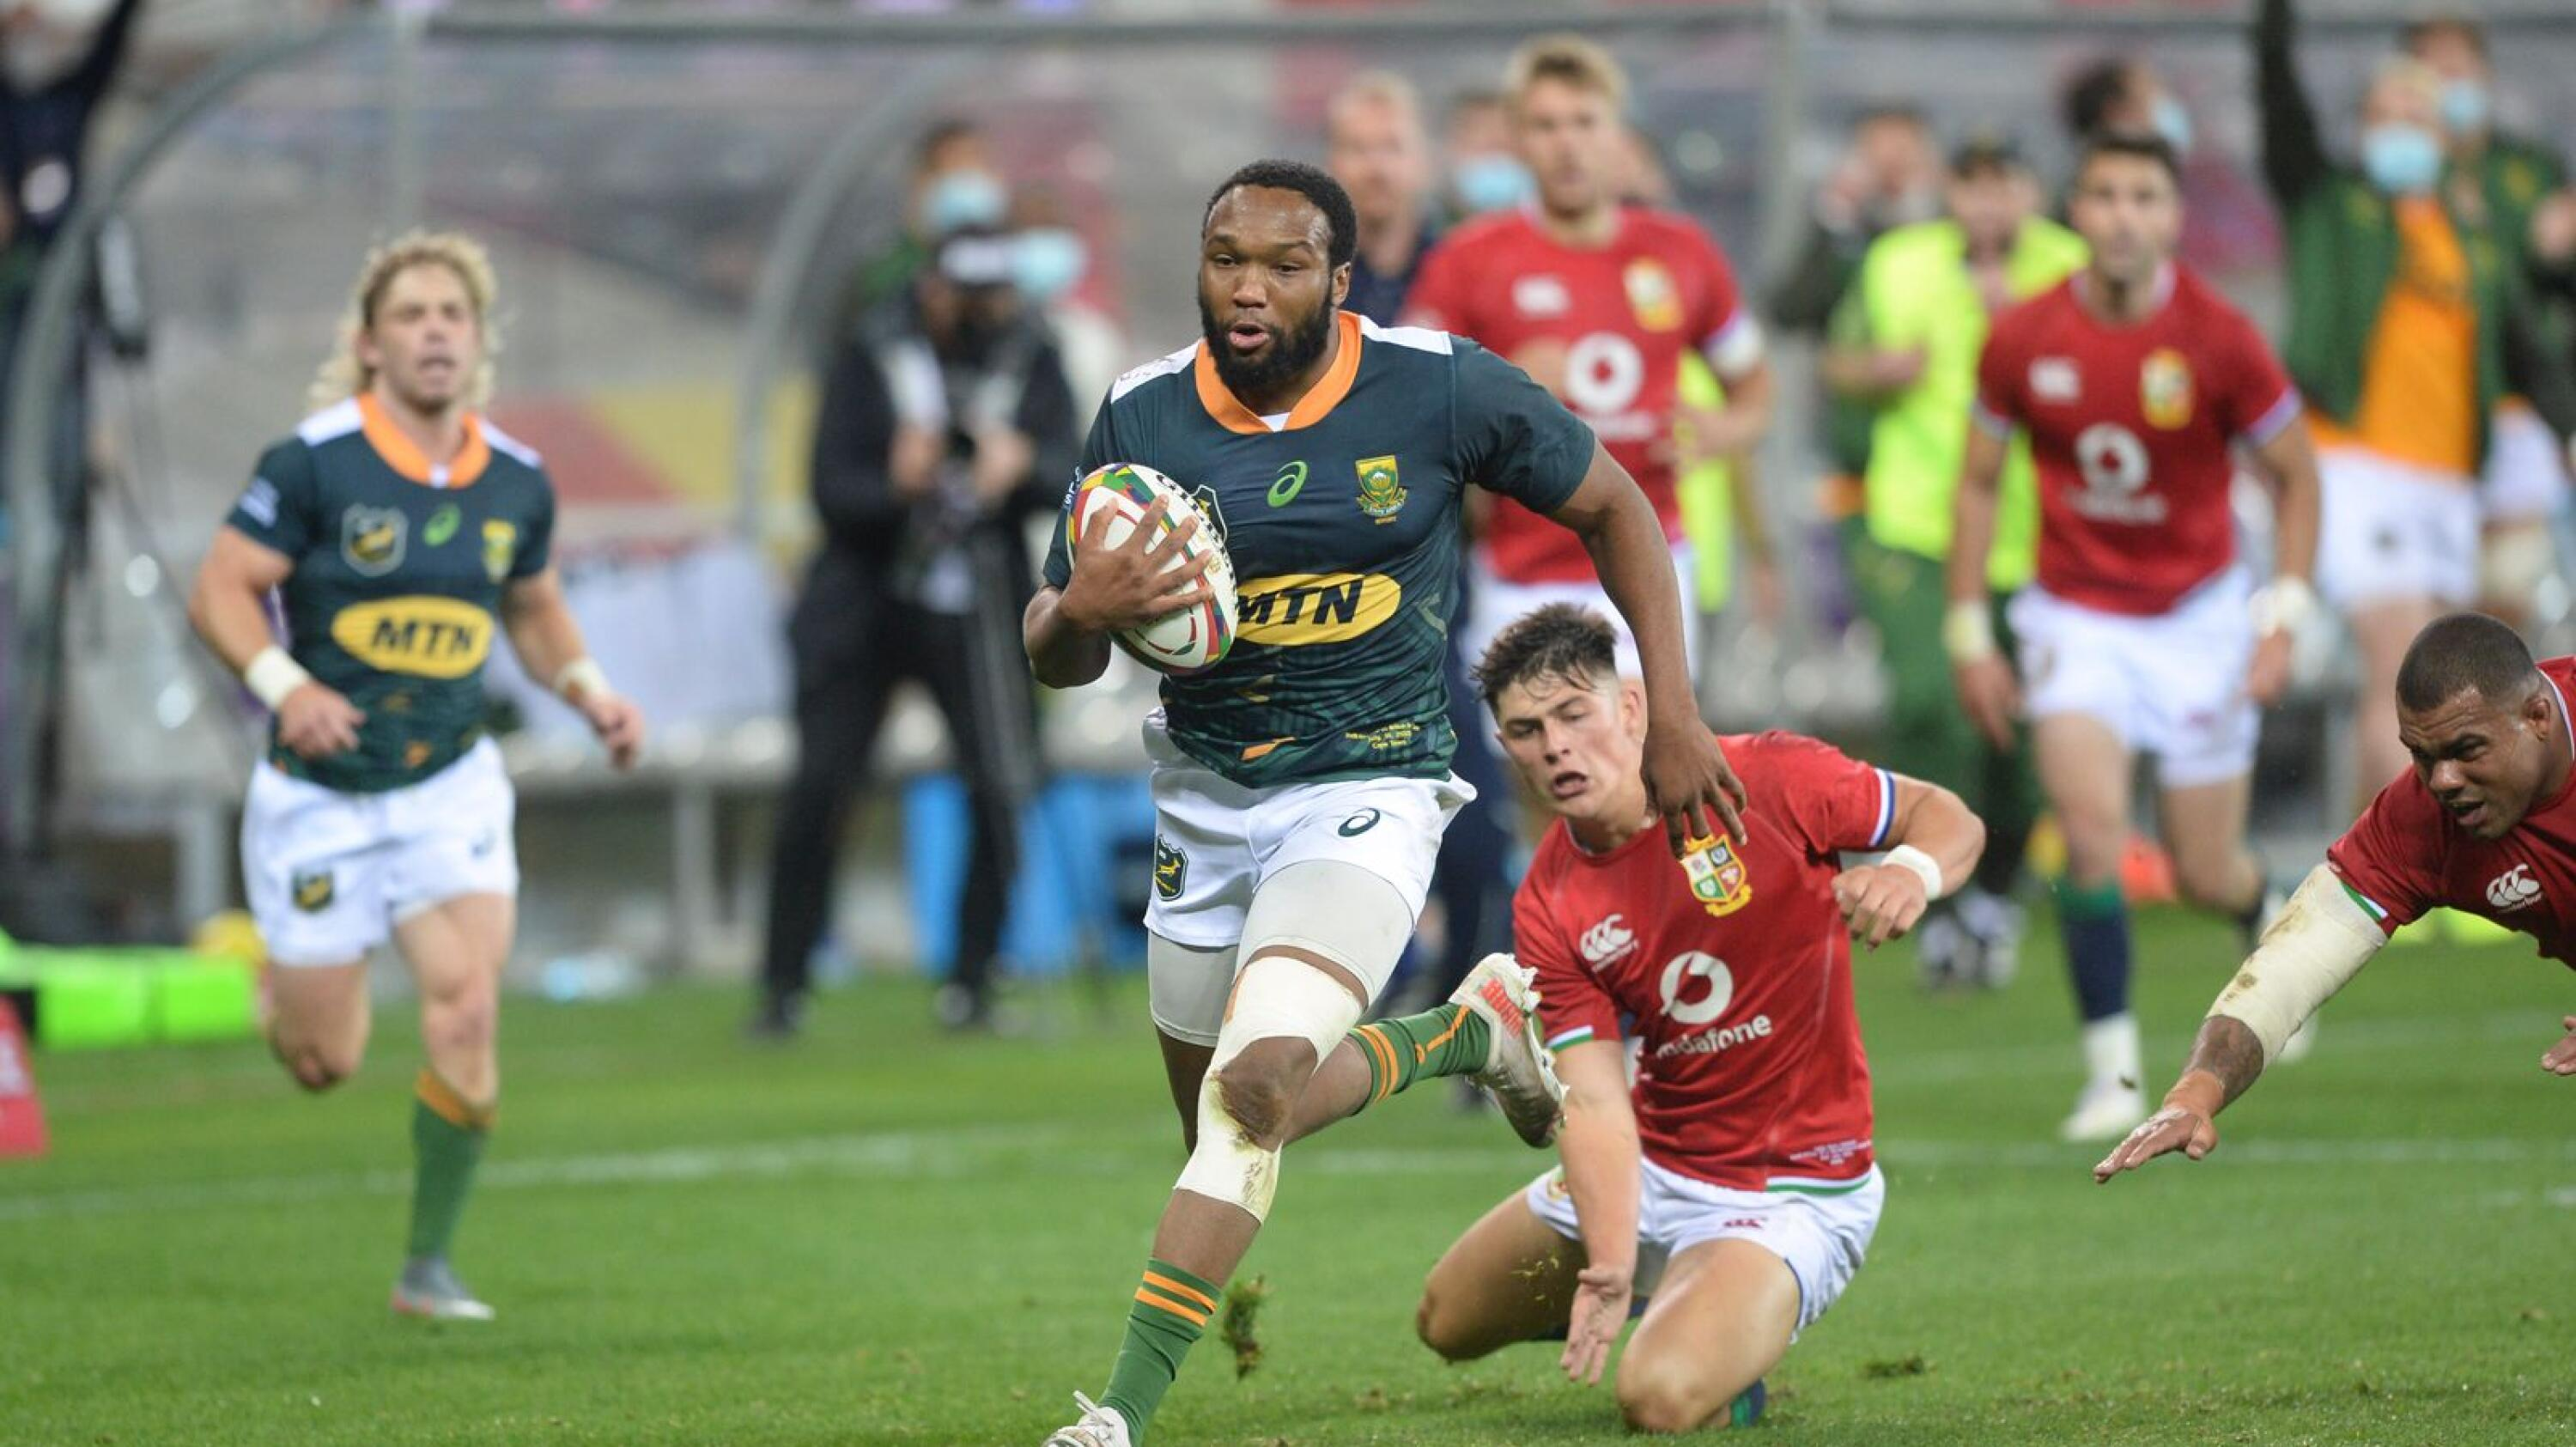 South Africa A's Lukhanyo Am breaks the British and Irish Lions line to score a try during their tour game at the Cape Town Stadium on Thursday